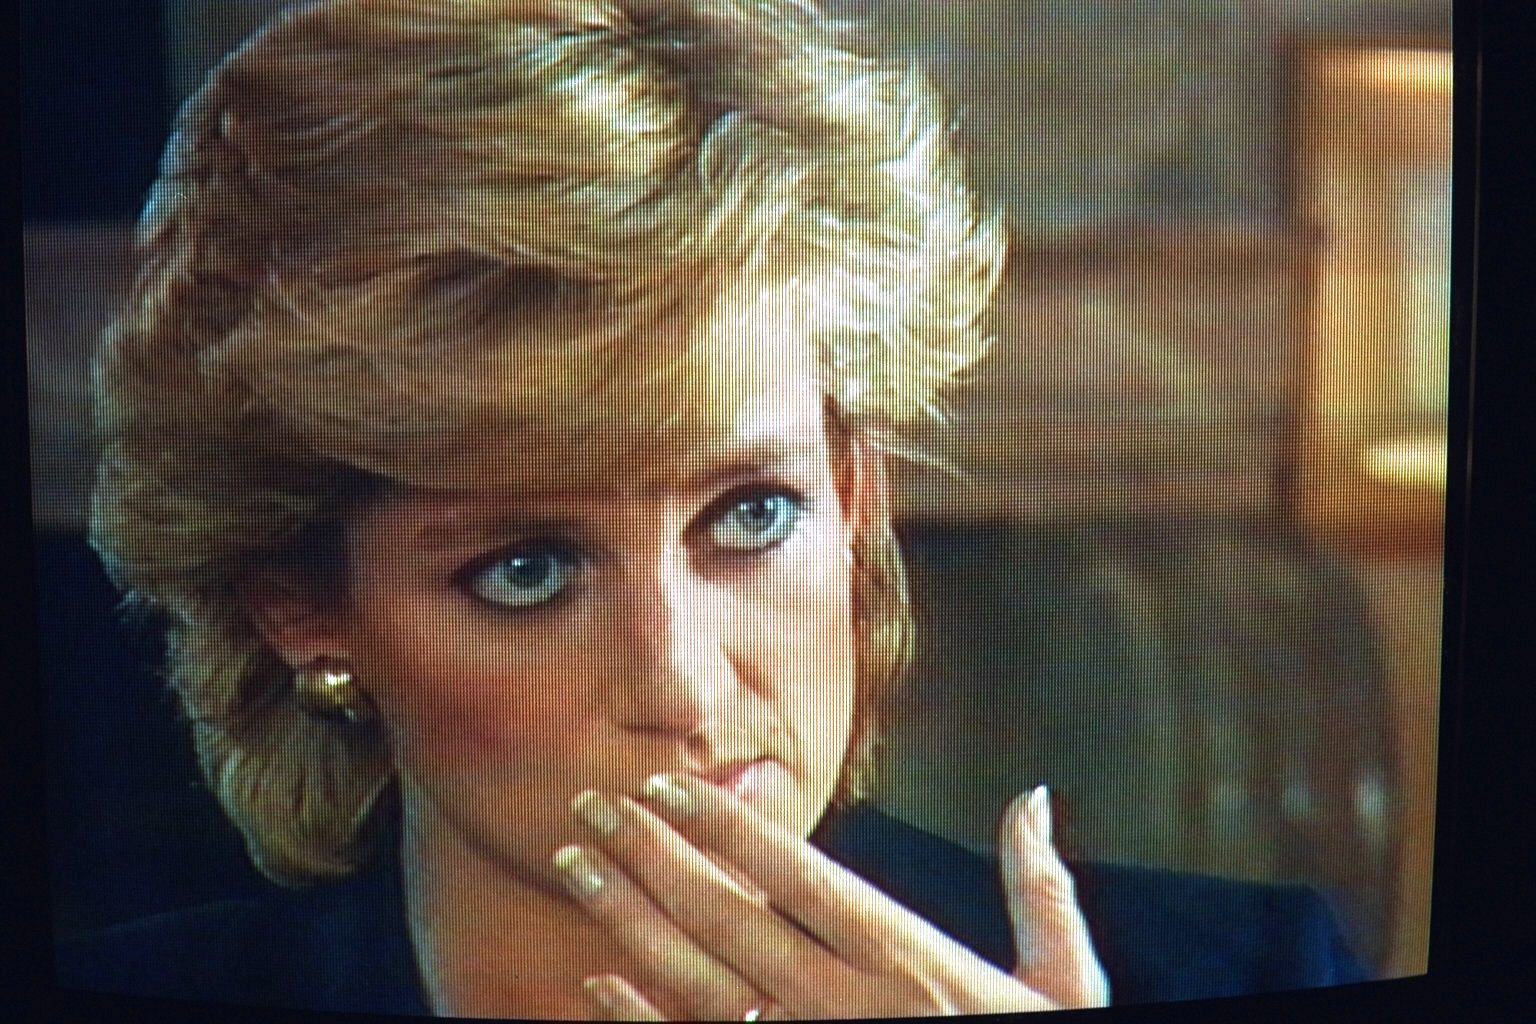 Princess Diana's Ex Breaks His Silence to Speak Out About Her Infamous BBC Interview